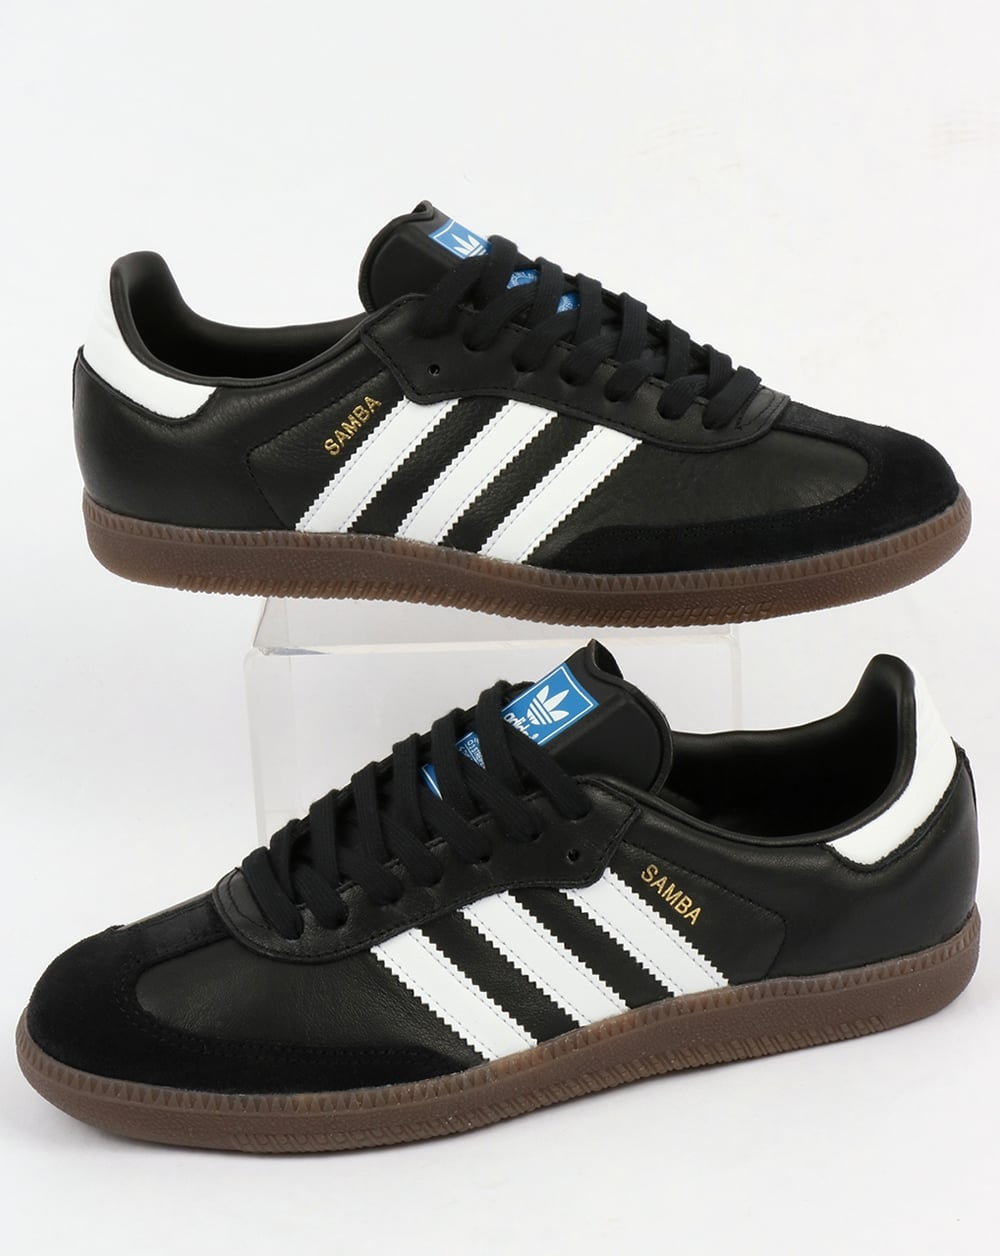 Adidas Samba Trainers Black/White D19p8015